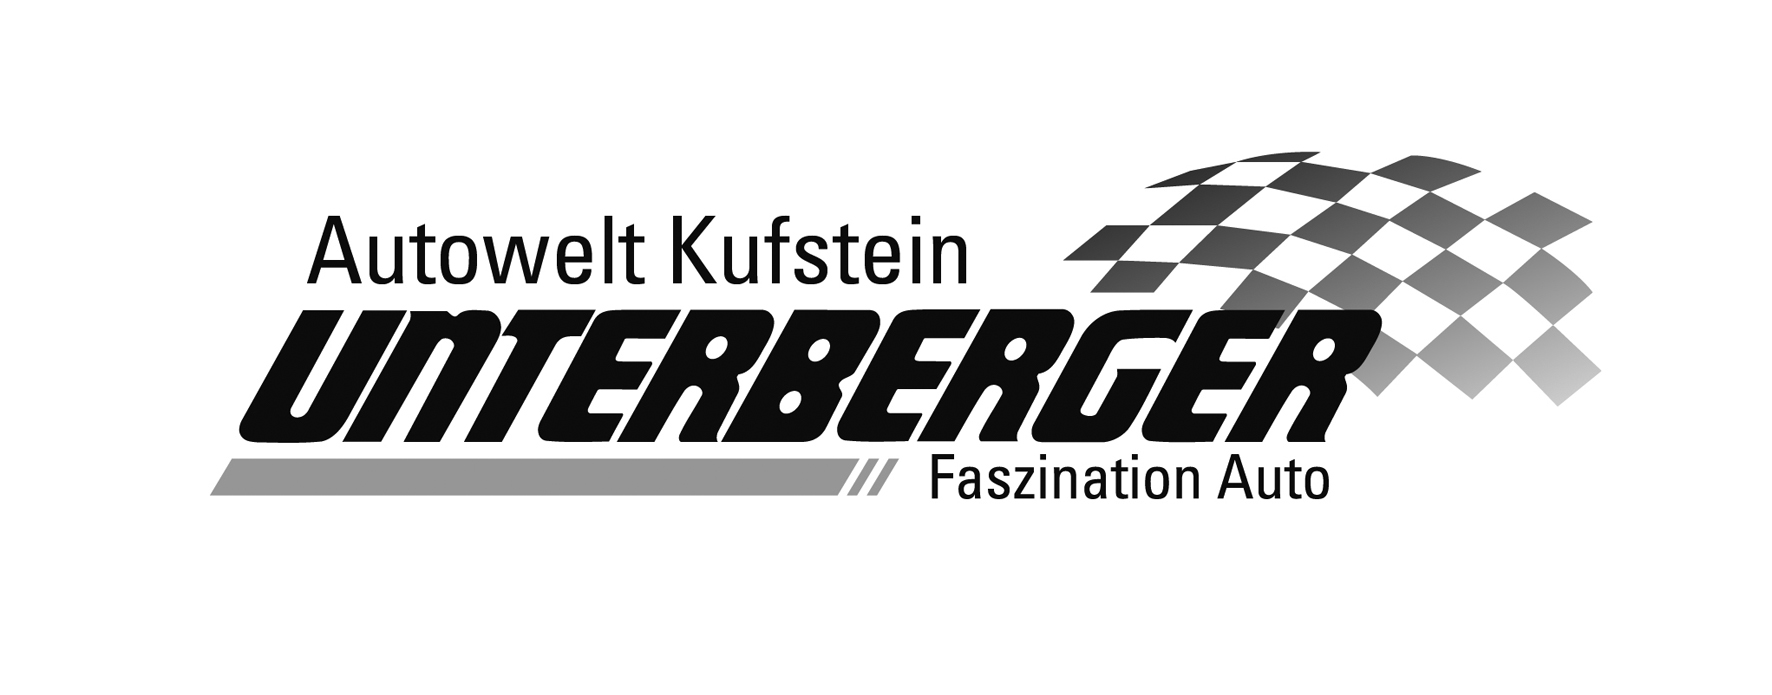 https://kat100.at/wp-content/uploads/Autowelt-Kufstein-1.jpg